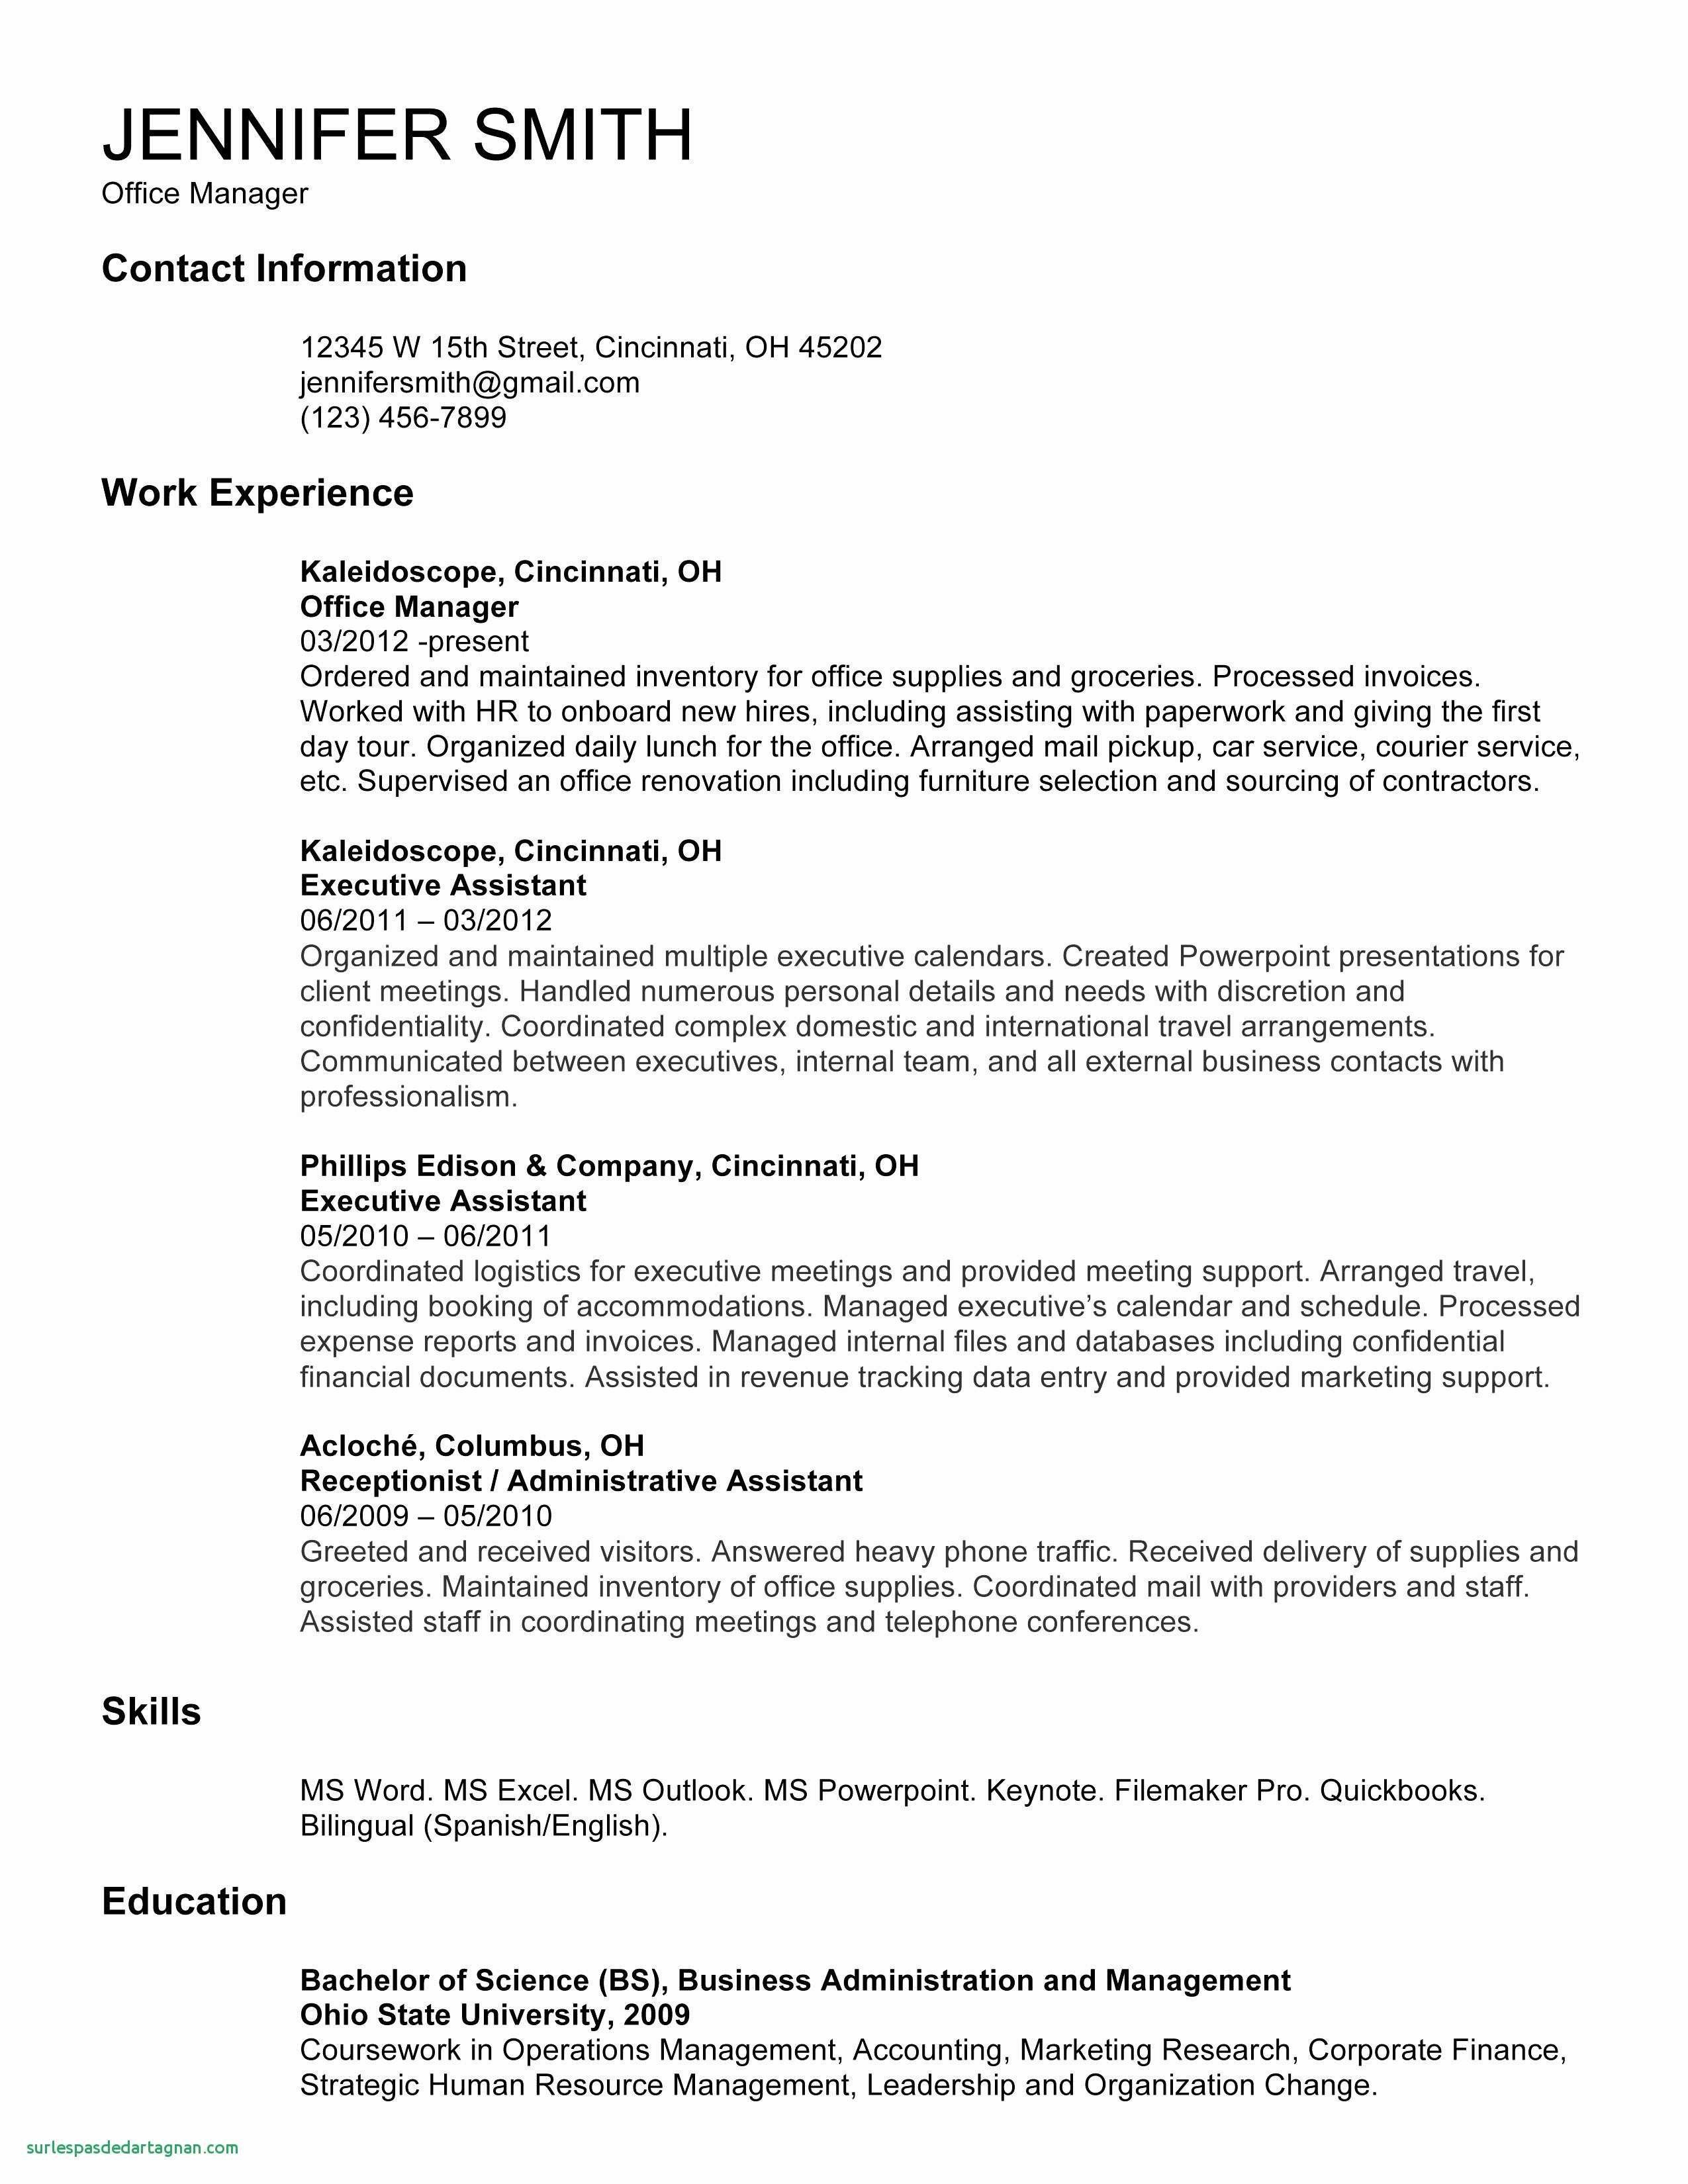 Manager Resume Template Word - Resume Template Download Free Unique ¢Ë†Å¡ Resume Template Download